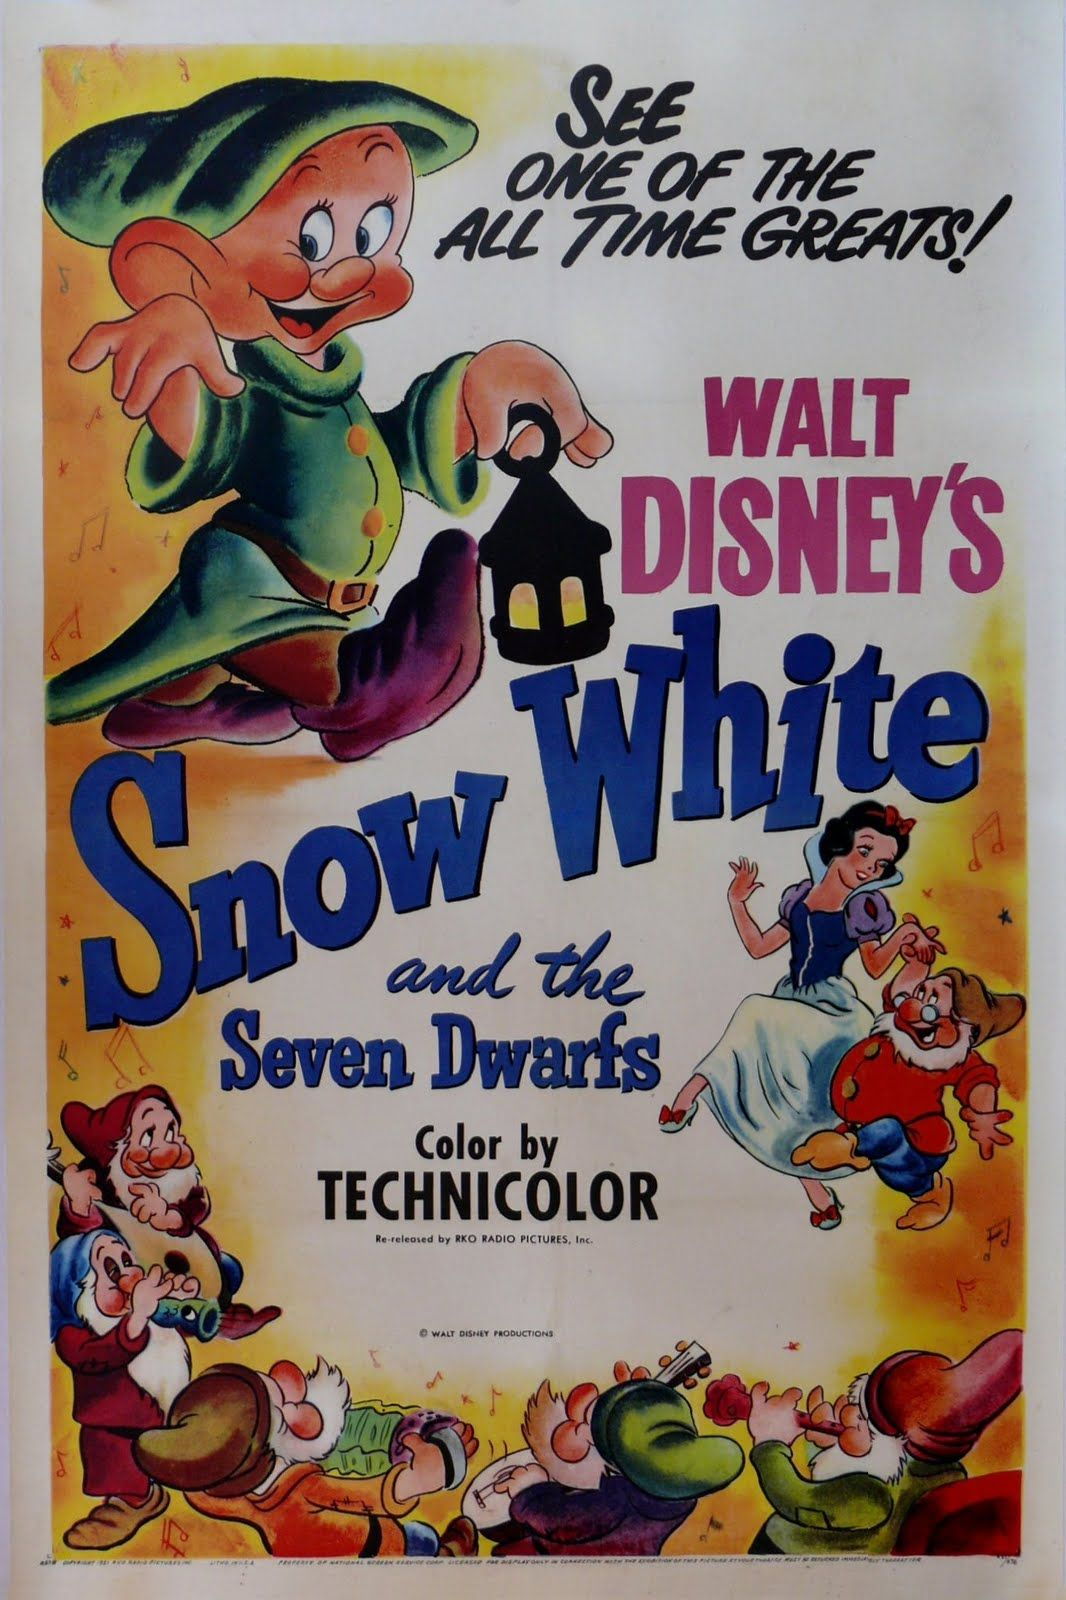 filmic light snow white archive snow white movie